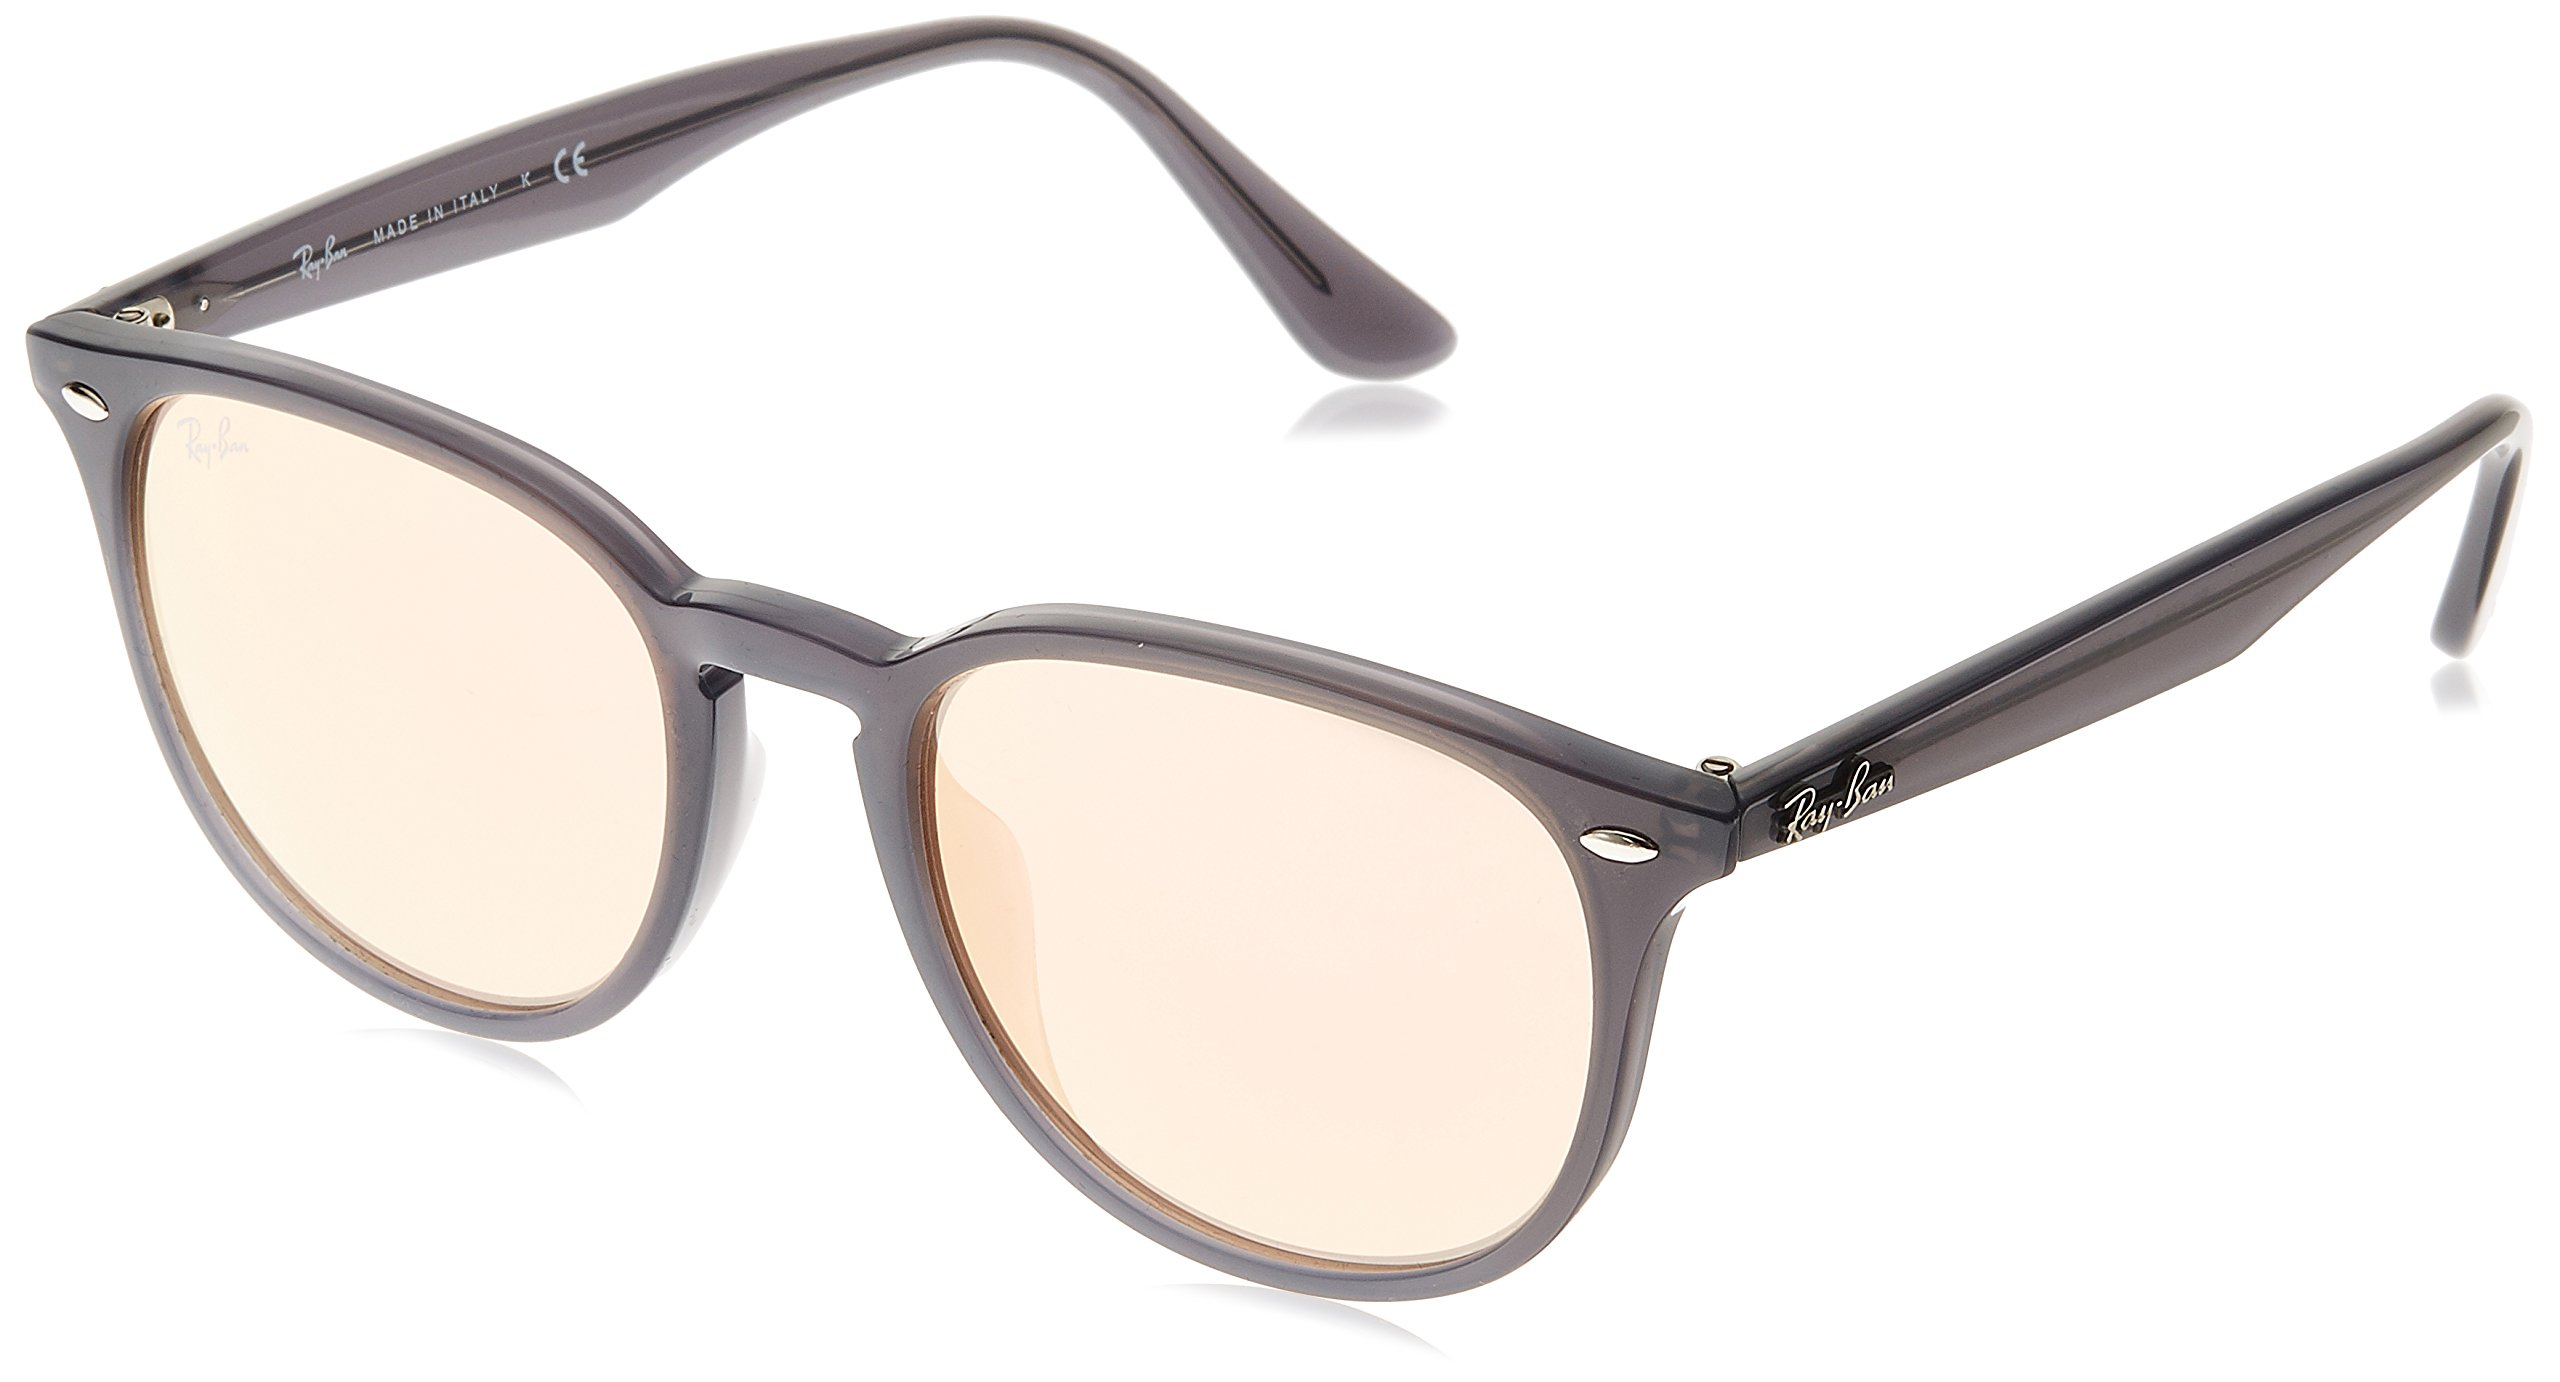 Ray-Ban Sunglasses - RB4259F / Frame: Shiny Opal Gray Lens: Orange Flash-RB4259F62307J53 by Ray-Ban